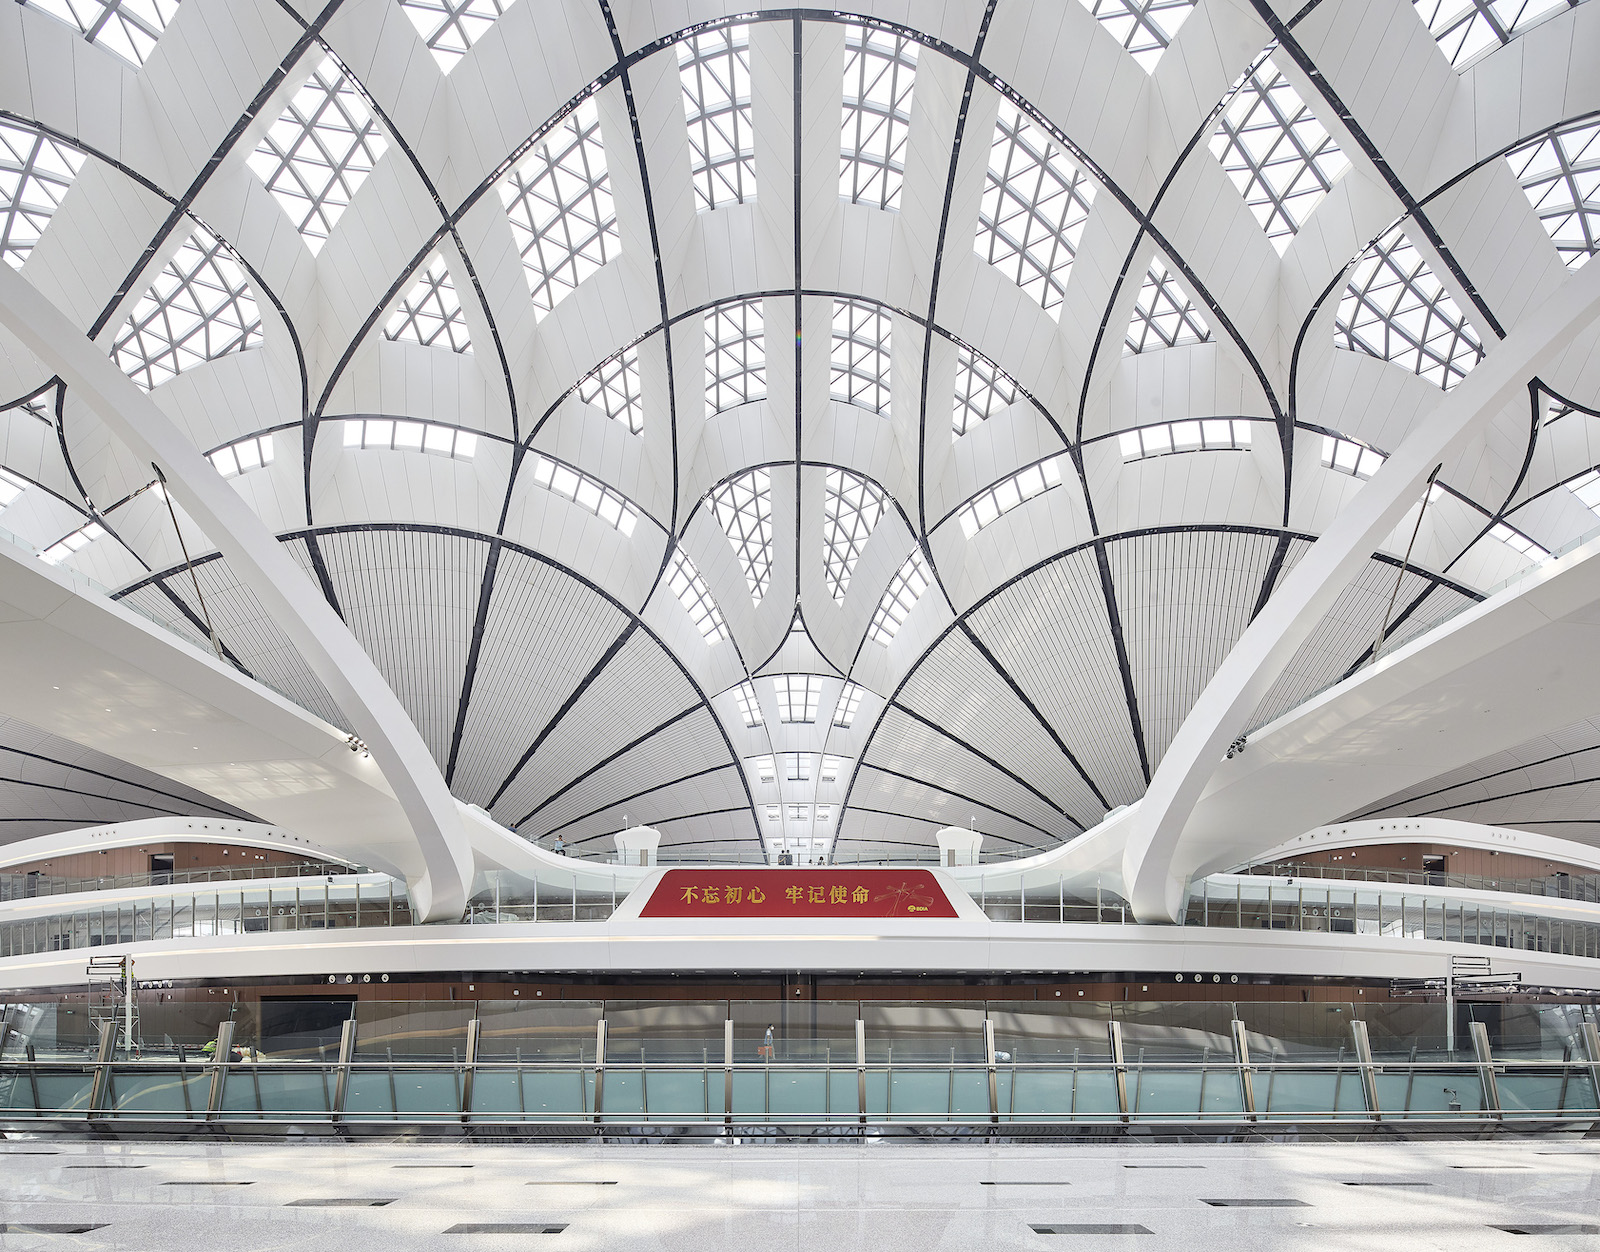 Zaha Hadid Architects' trippy new Beijing airport is now open